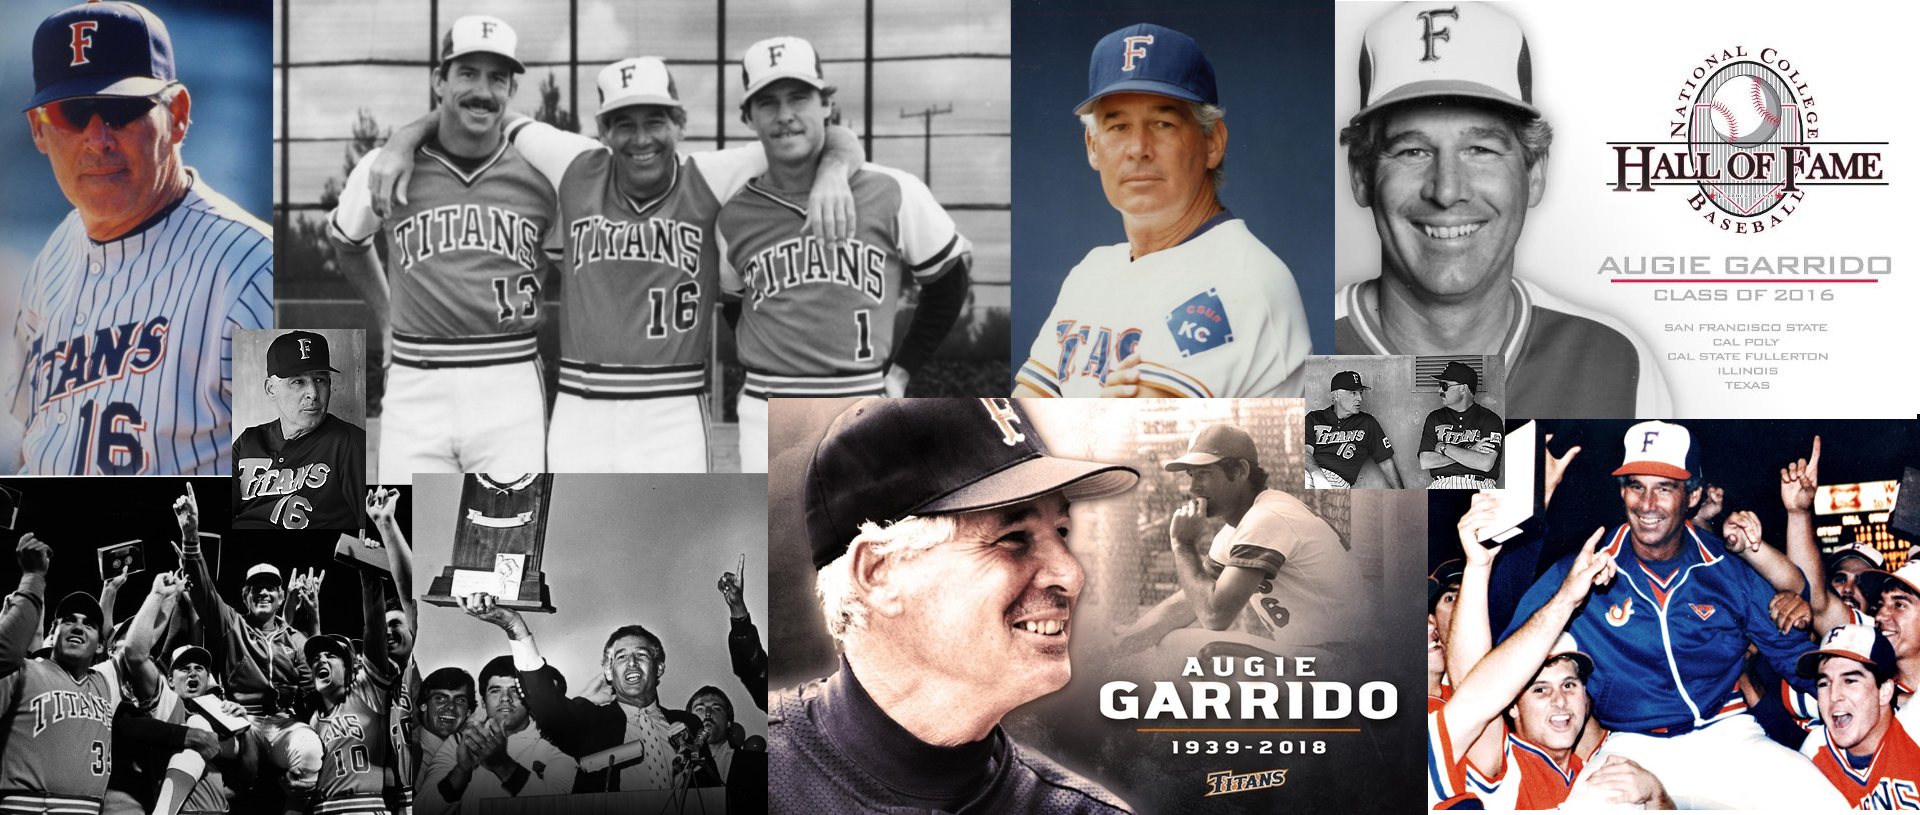 Augie Garrido collage